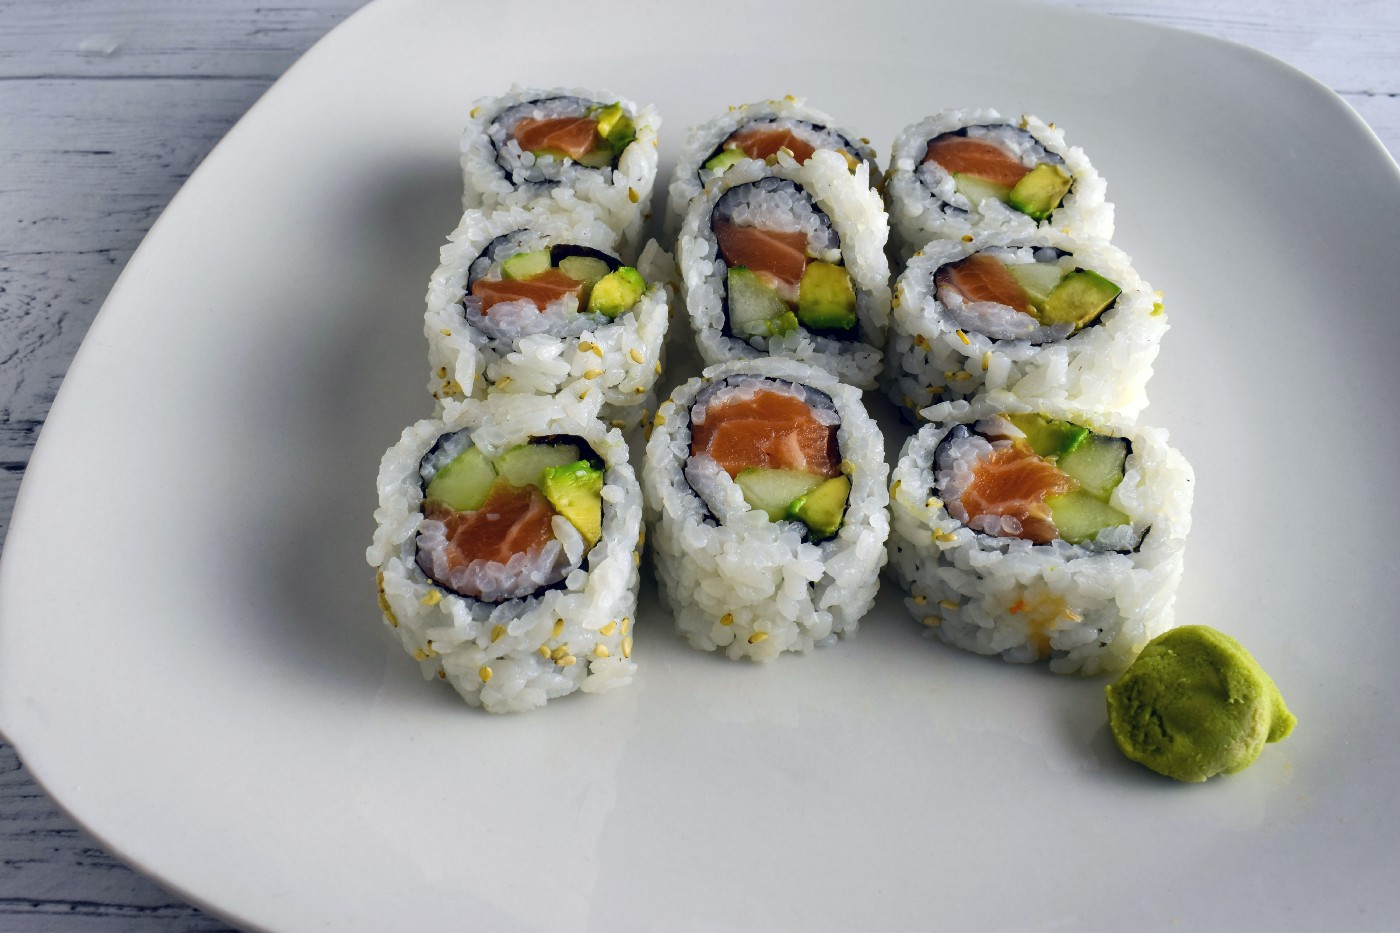 A plate holds several pieces of a California sushi roll.